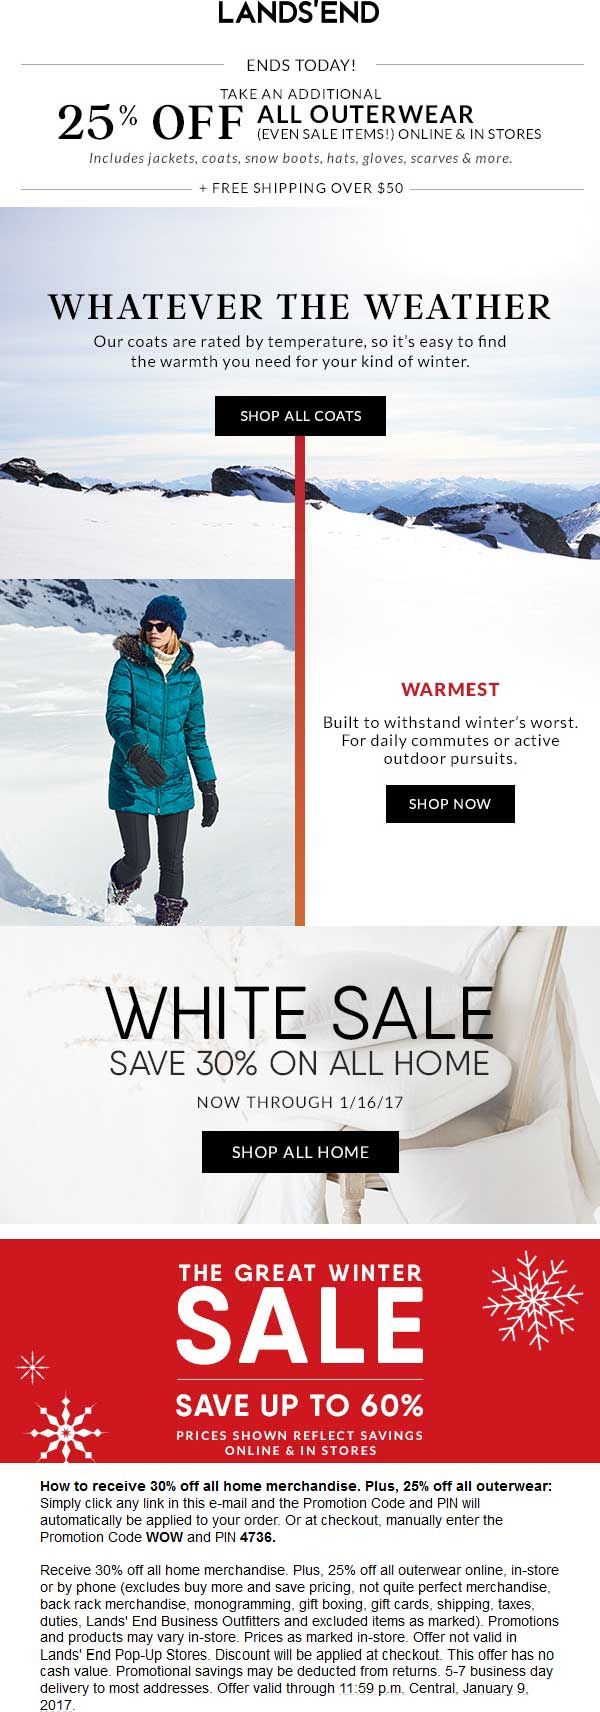 LandsEnd.com Promo Coupon 25% off outerwear today at Lands End, or online via promo code WOW and pin 4736